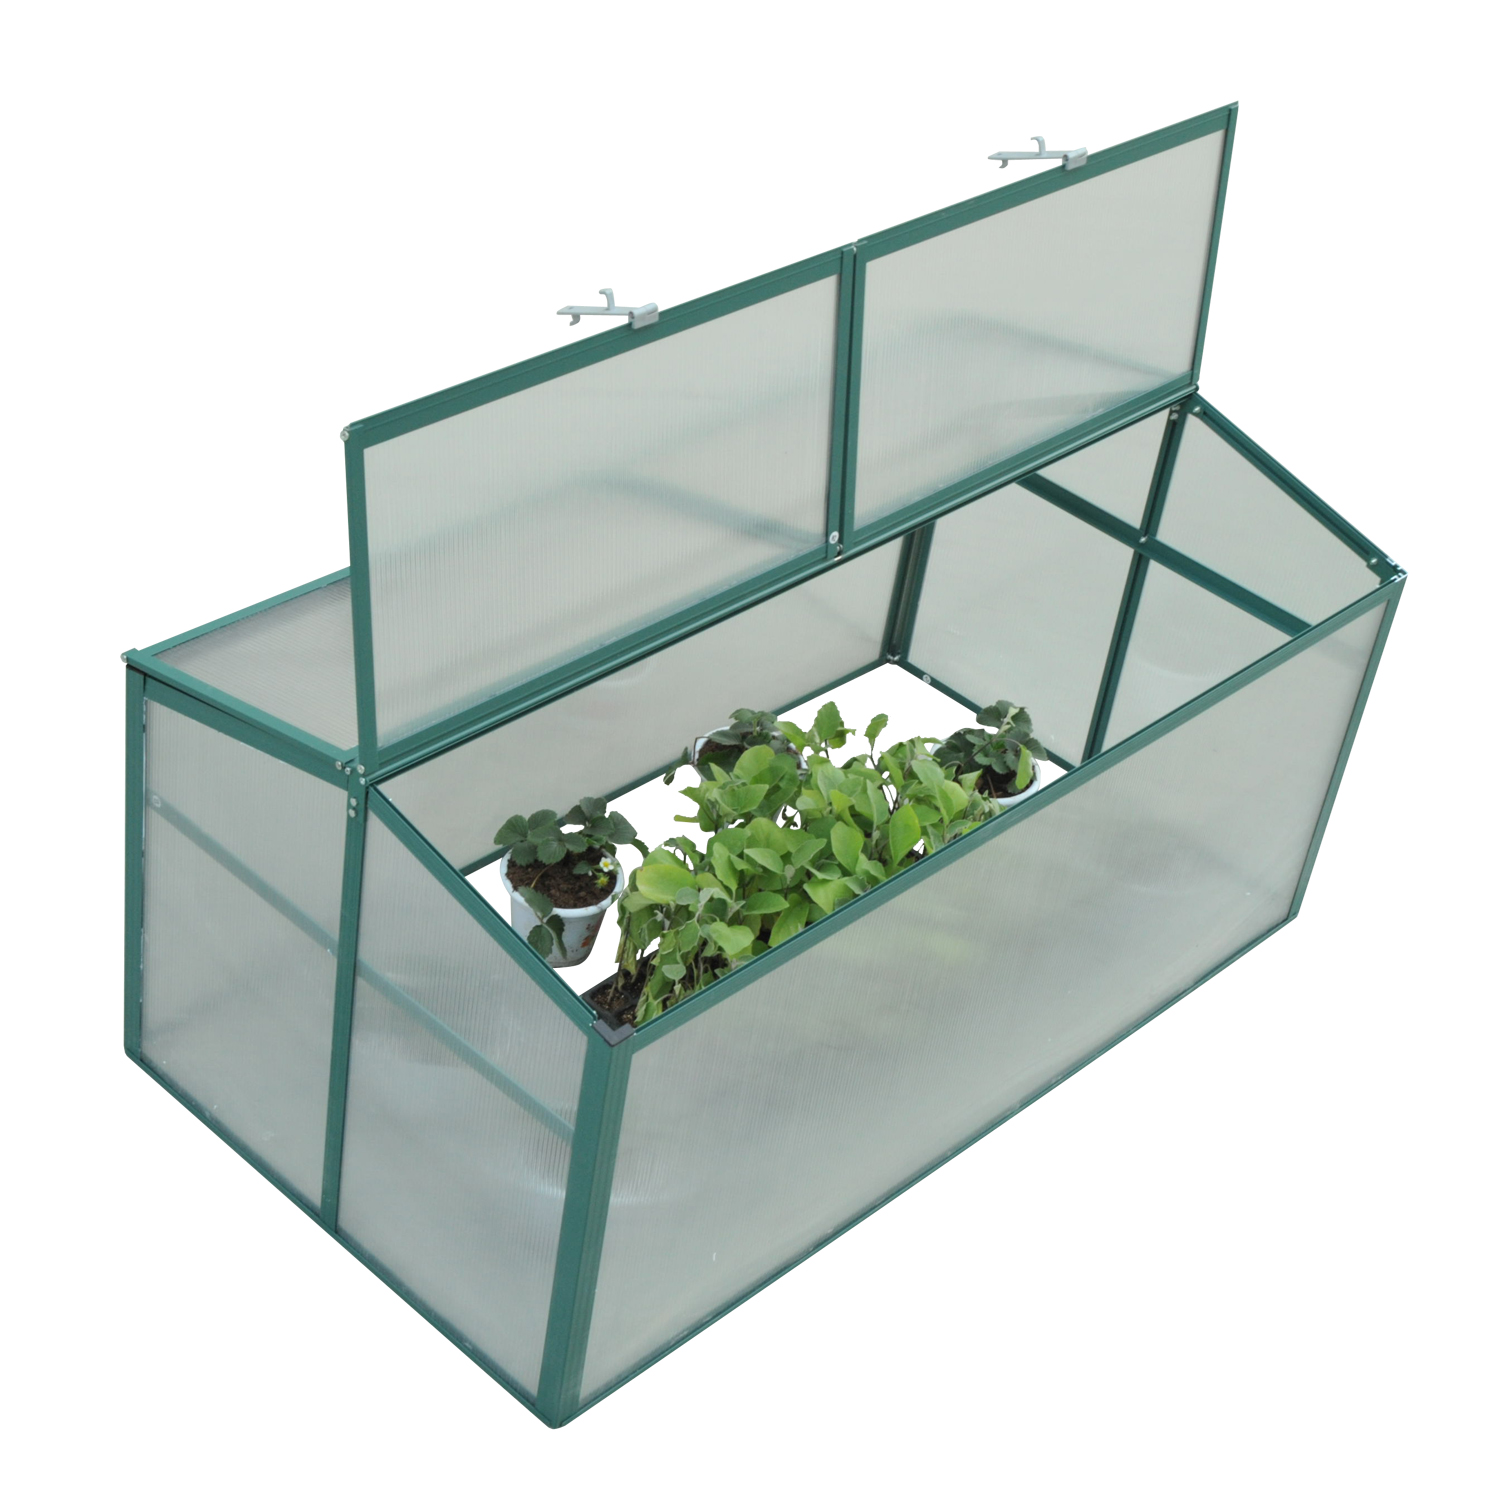 "Outsunny 52"" x 28"" Aluminum Vented Cold Frame Greenhouse by Aosom"